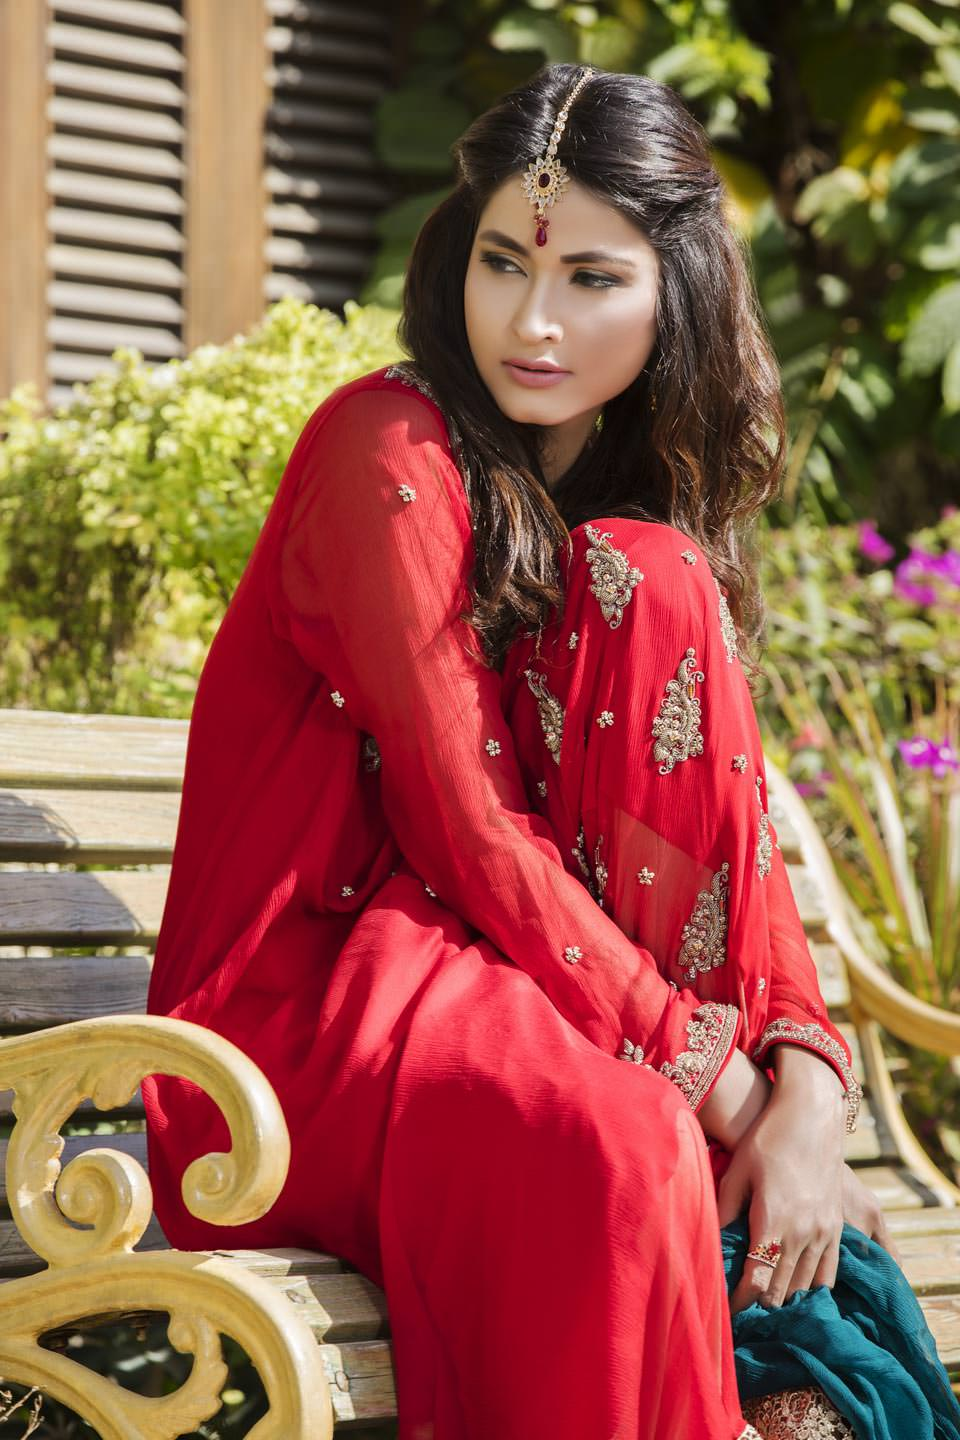 Buy Red, Bottle Green And Fone Color Bridal Dress – G12069 Online In USA, Uk & Pakistan - 03